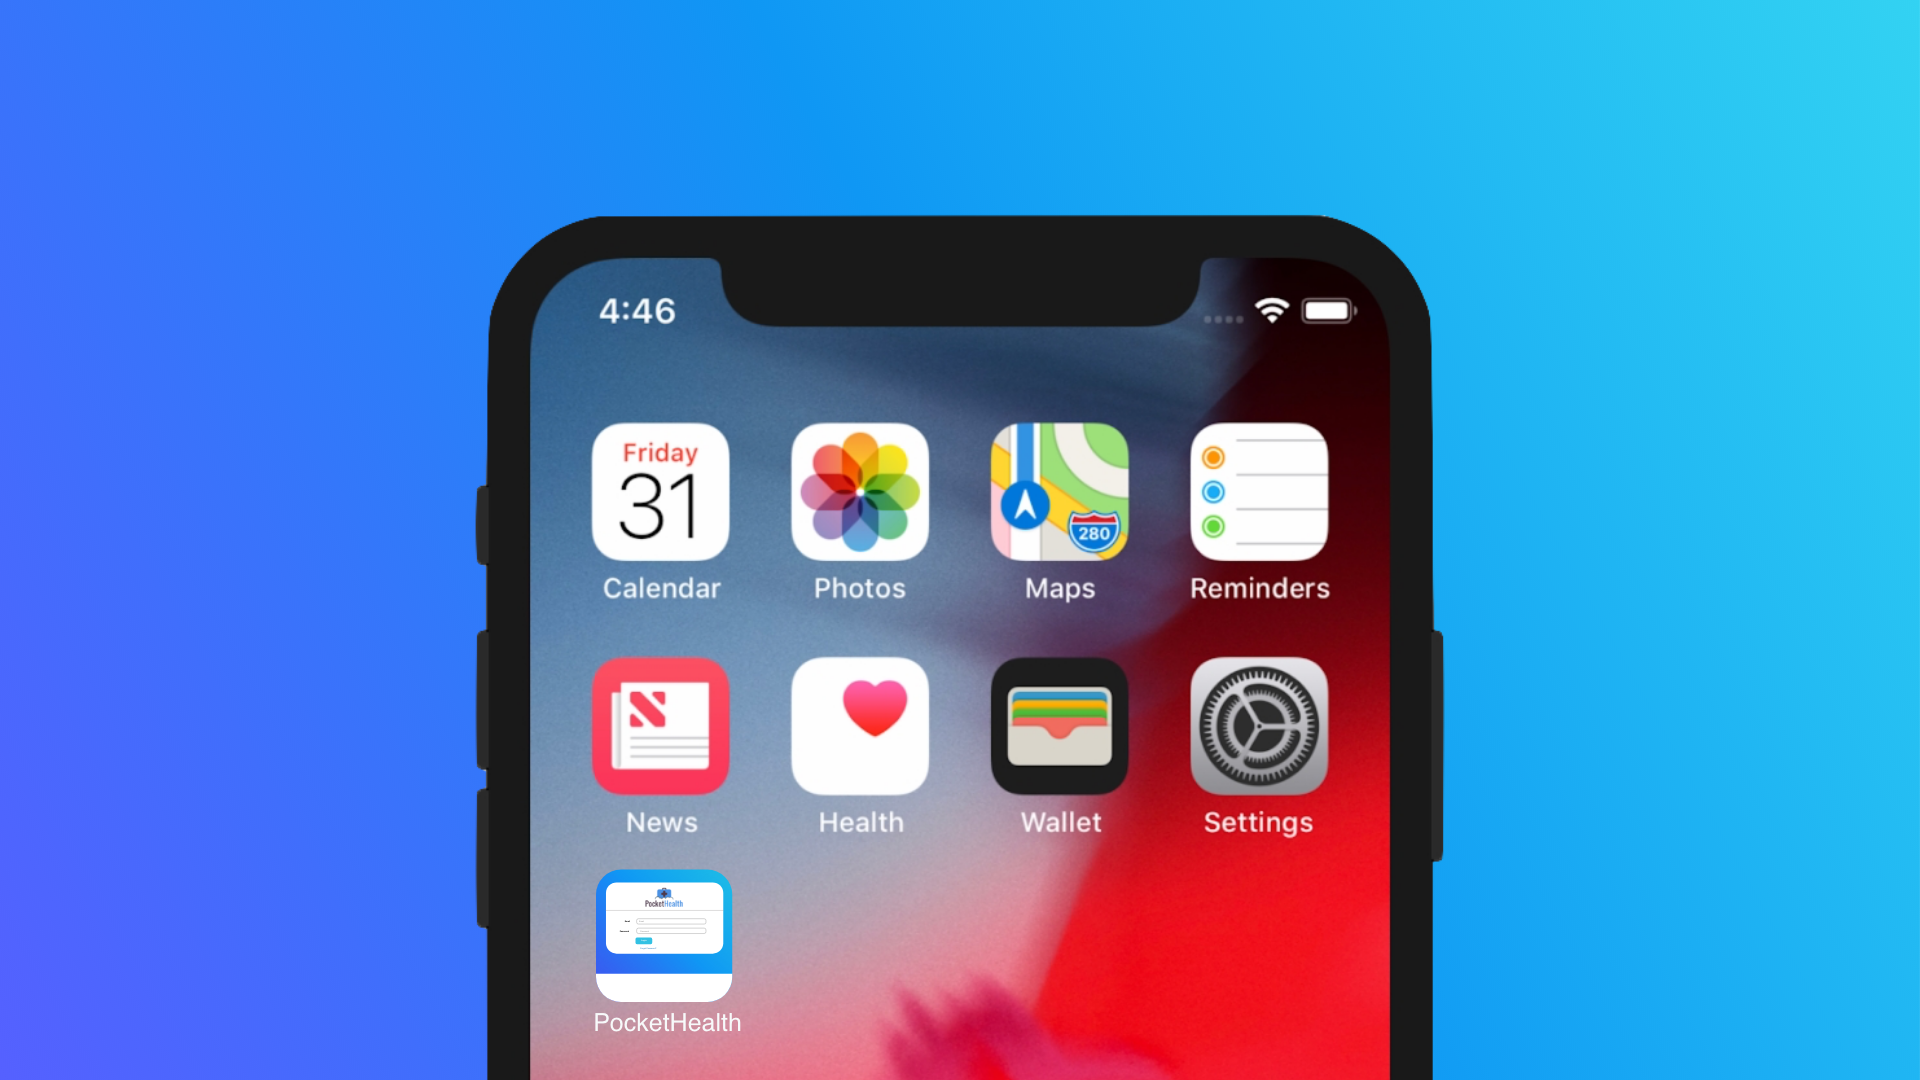 How To: Add PocketHealth to Your Home Screen